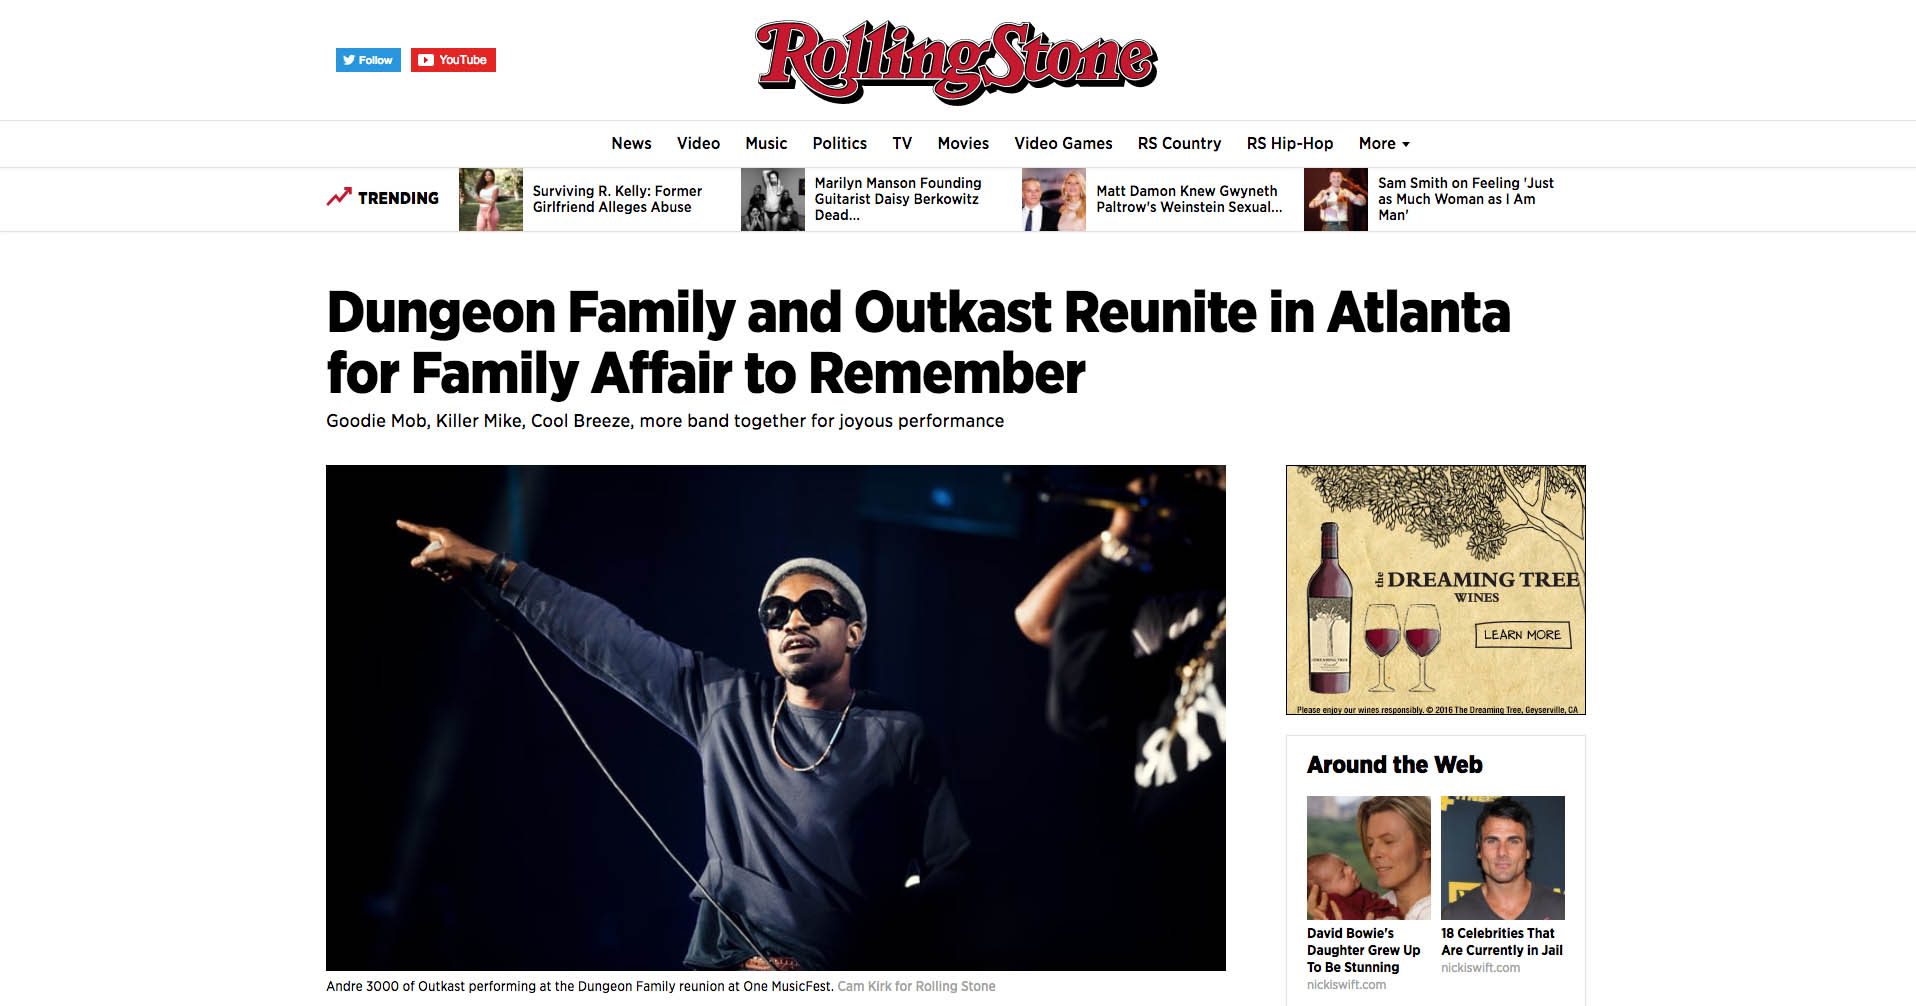 Dungeon Family & Outkast for Rolling Stone Magazine, Sept. 2016